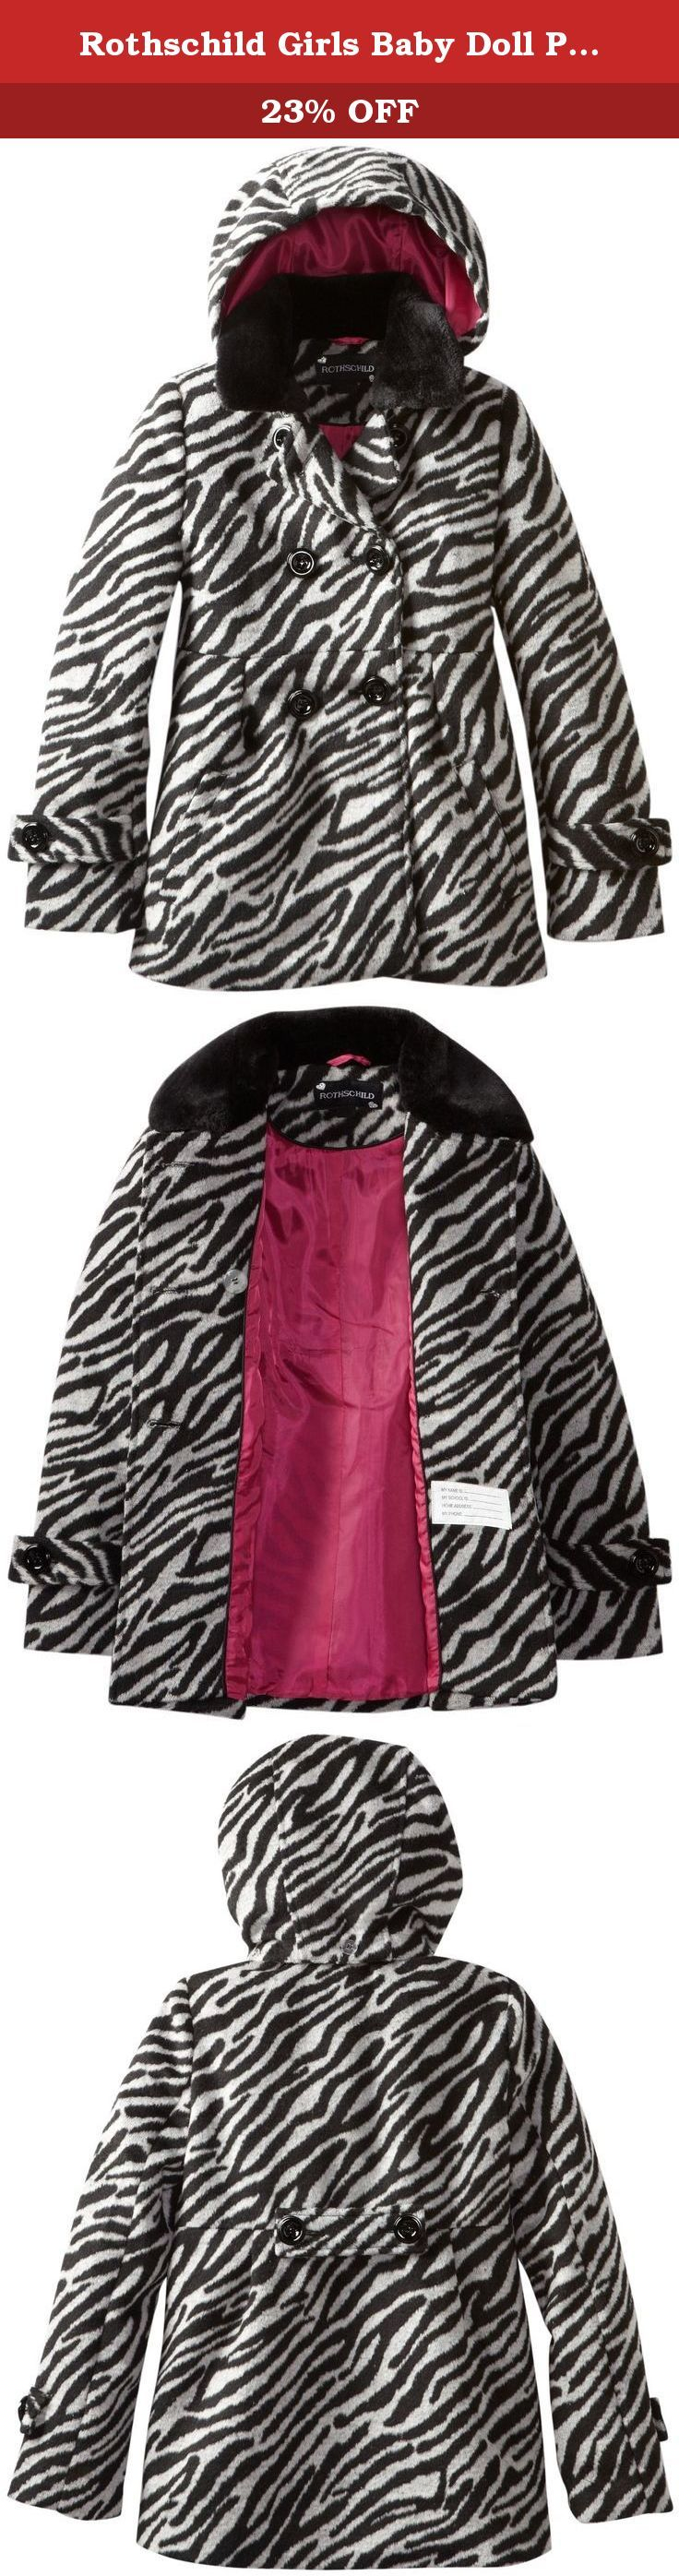 Rothschild Girls Baby Doll Peacoat Jacket with Faux Fur Collar - Tonal Zebra (Size 6X). This dress pea jacket for girls are the perfect outerwear for winter. Jacket features is fully lined and featues beautiful tonal Zebra design, double-breasted button front closure, detachable hood, 2 side entry pockets and buttoned tab on sleeve and on back.